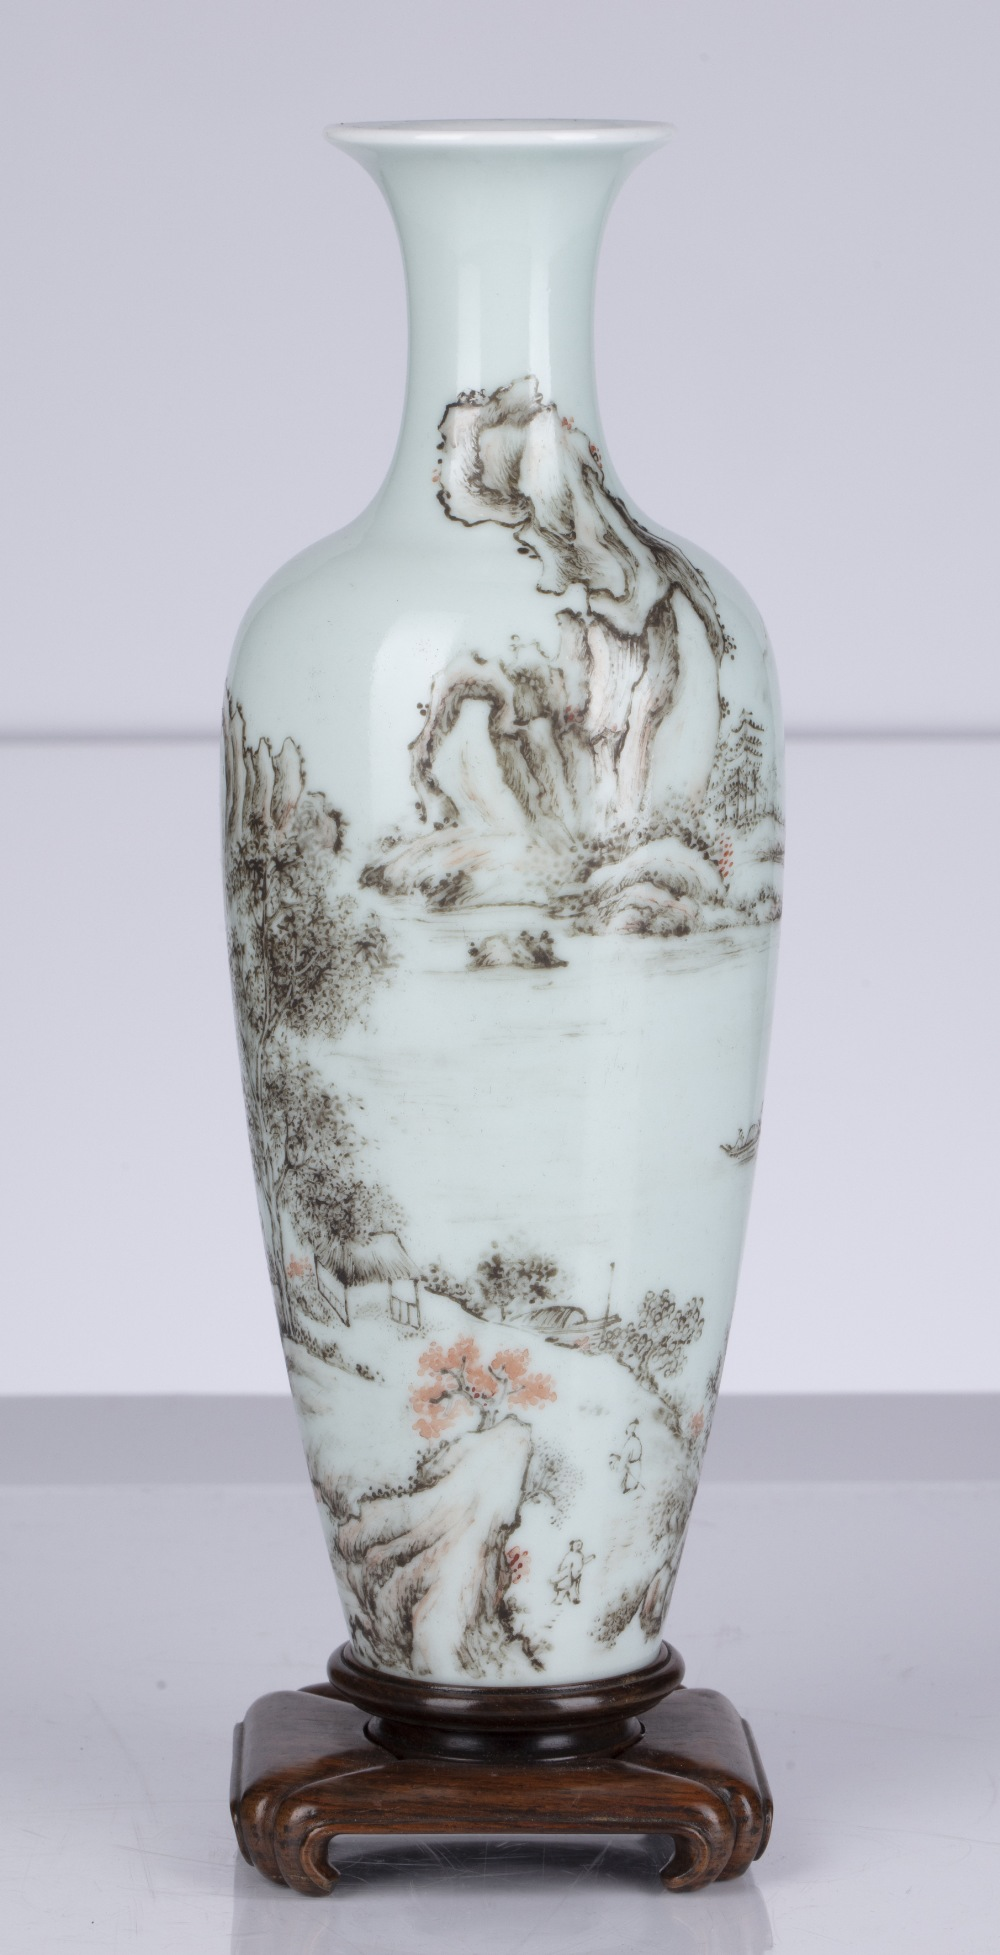 Famille rose and grisaille 'Landscape vase' Chinese, Republic period the slender body decorated with - Image 2 of 4